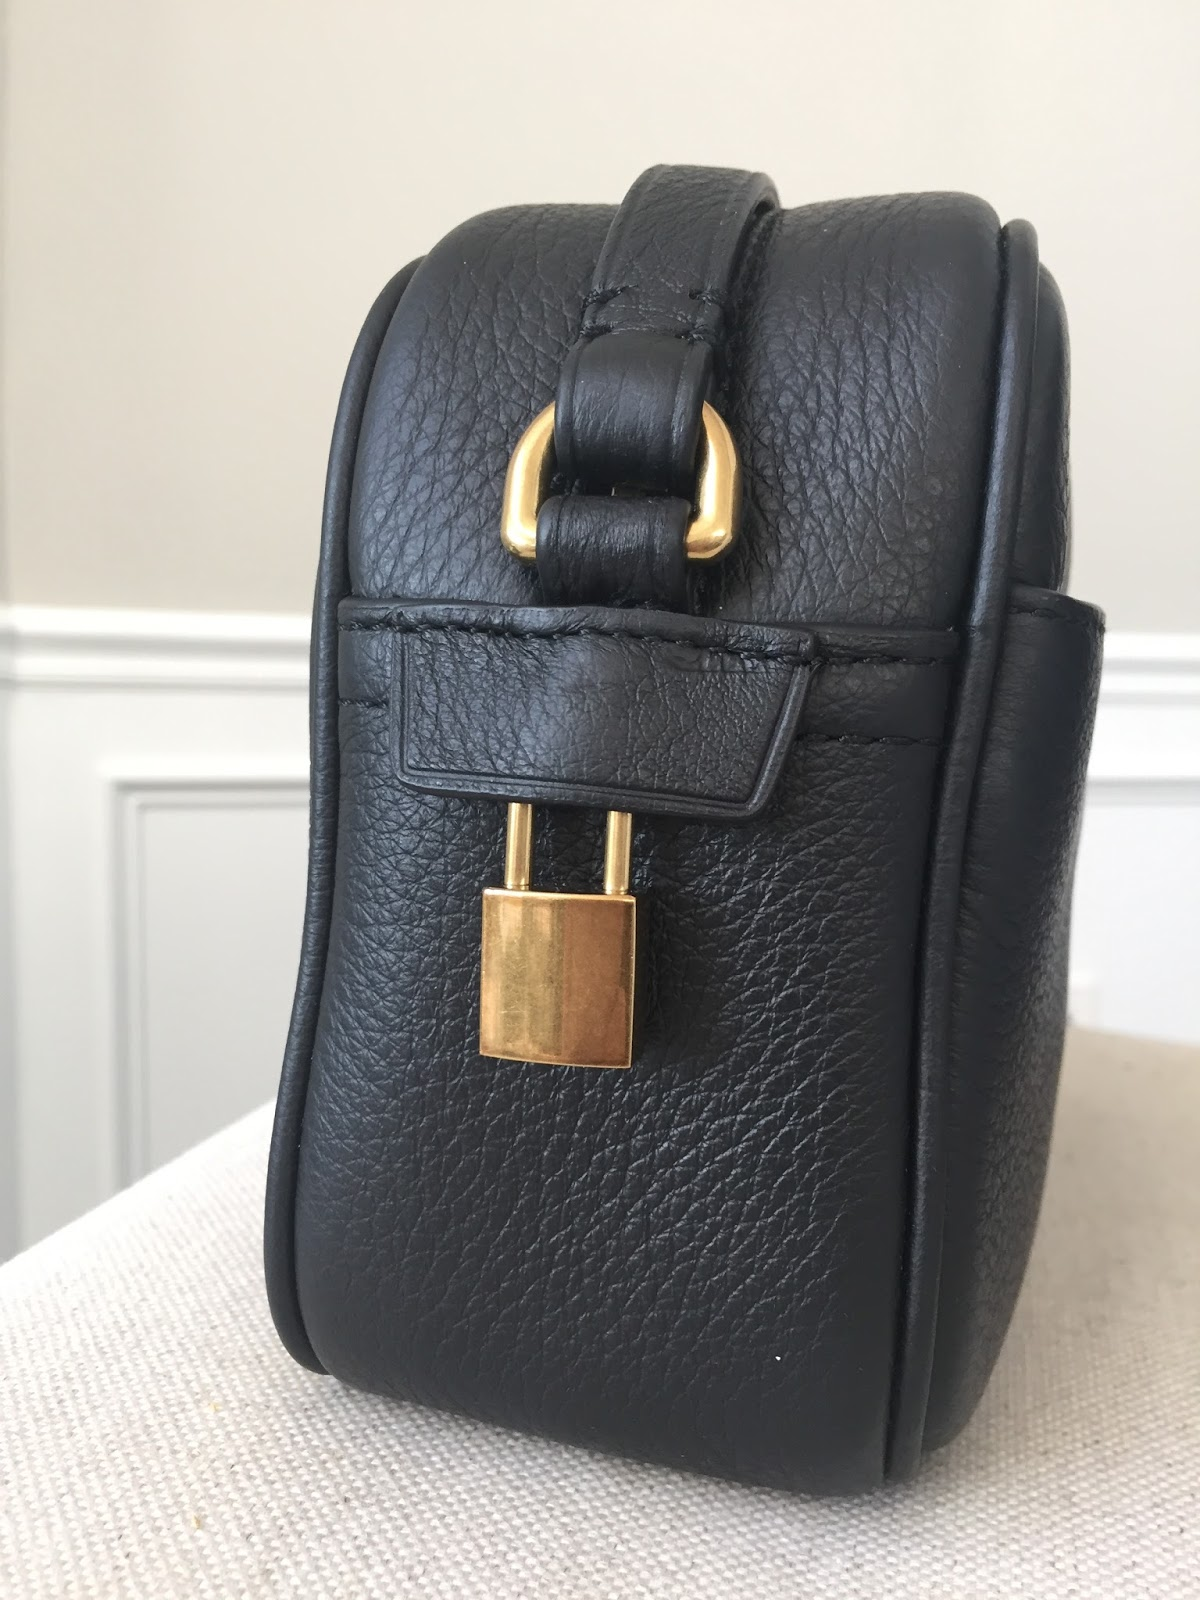 c140e61d1d8c I think the black color makes this a very versatile bag that can go with  any outfit. The hardware is a subtle gold